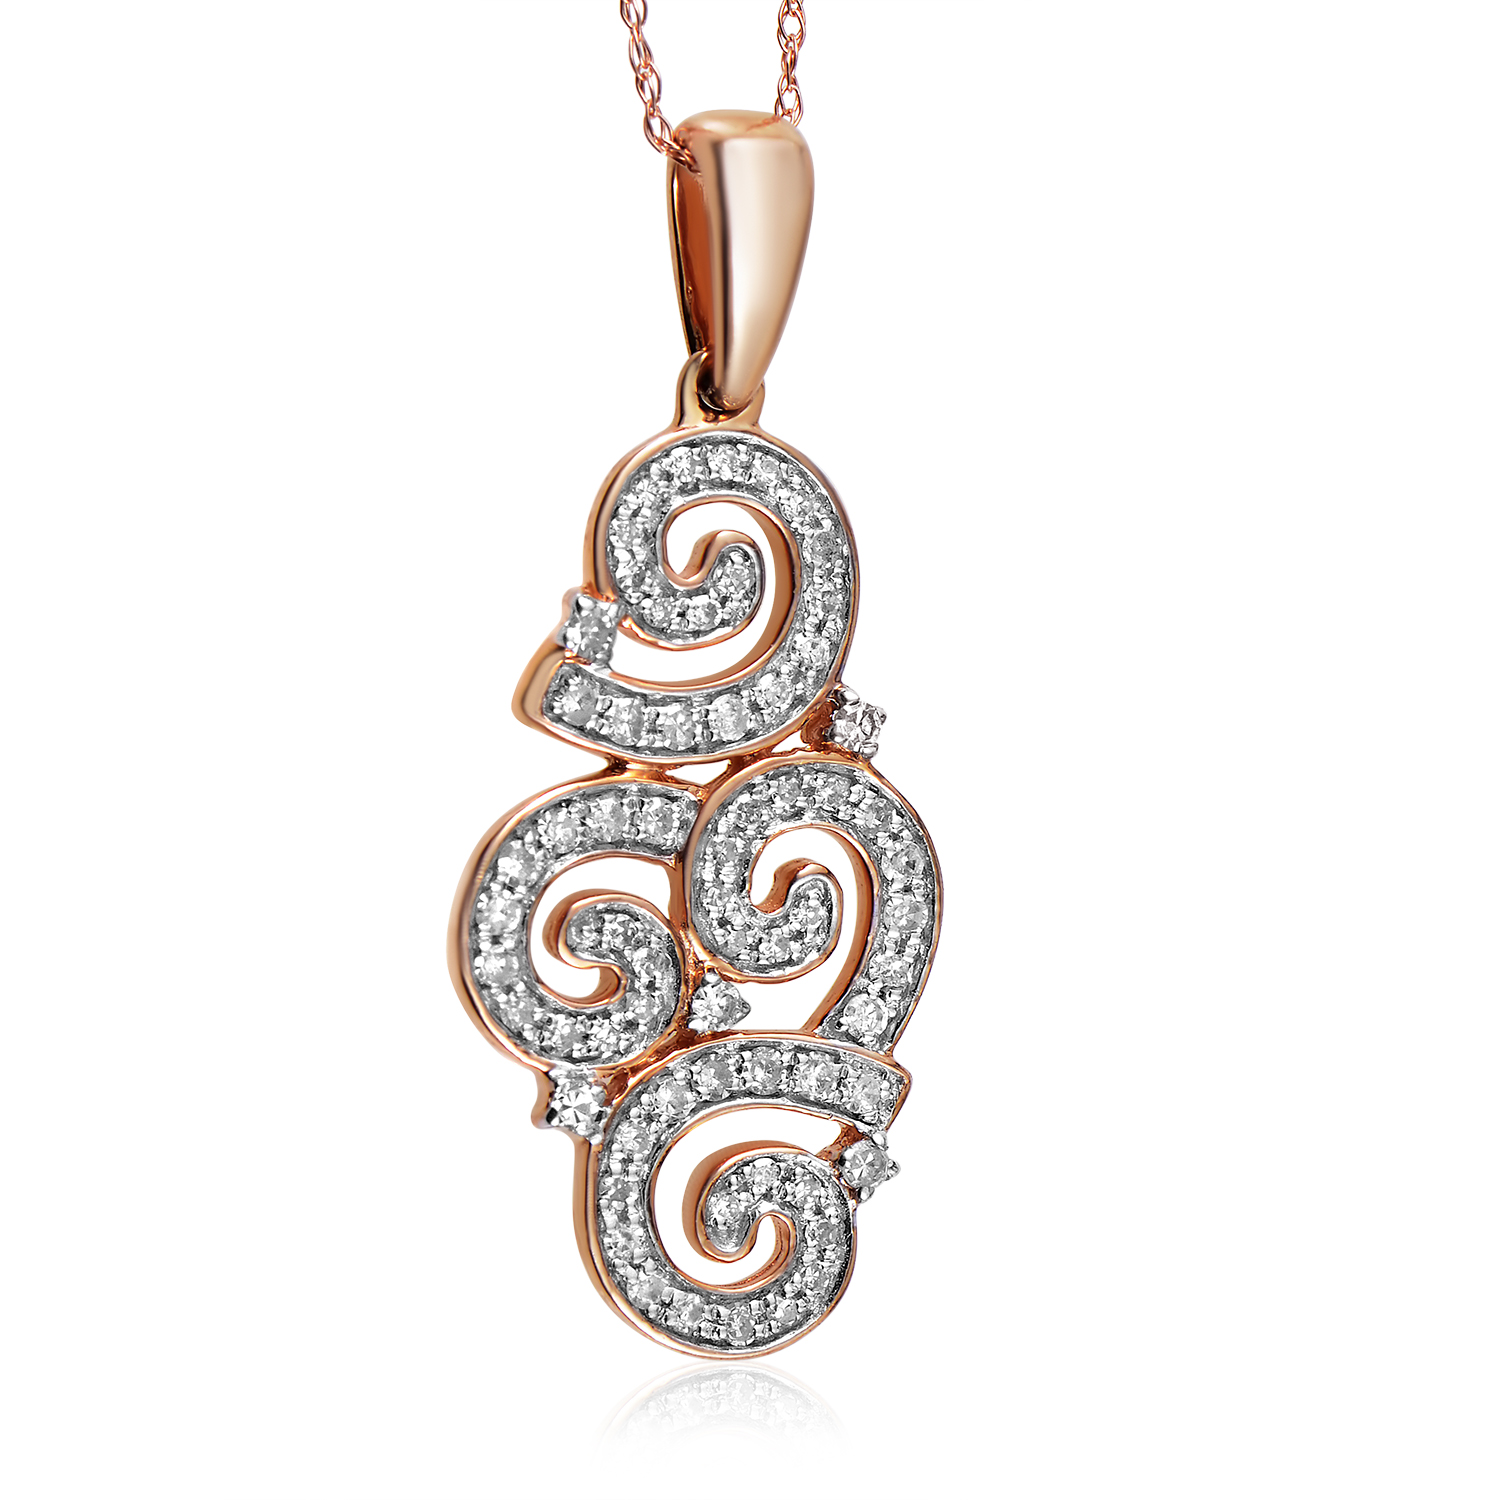 14K Rose Gold Diamond Swirl Pendant Necklace PD4-15237R